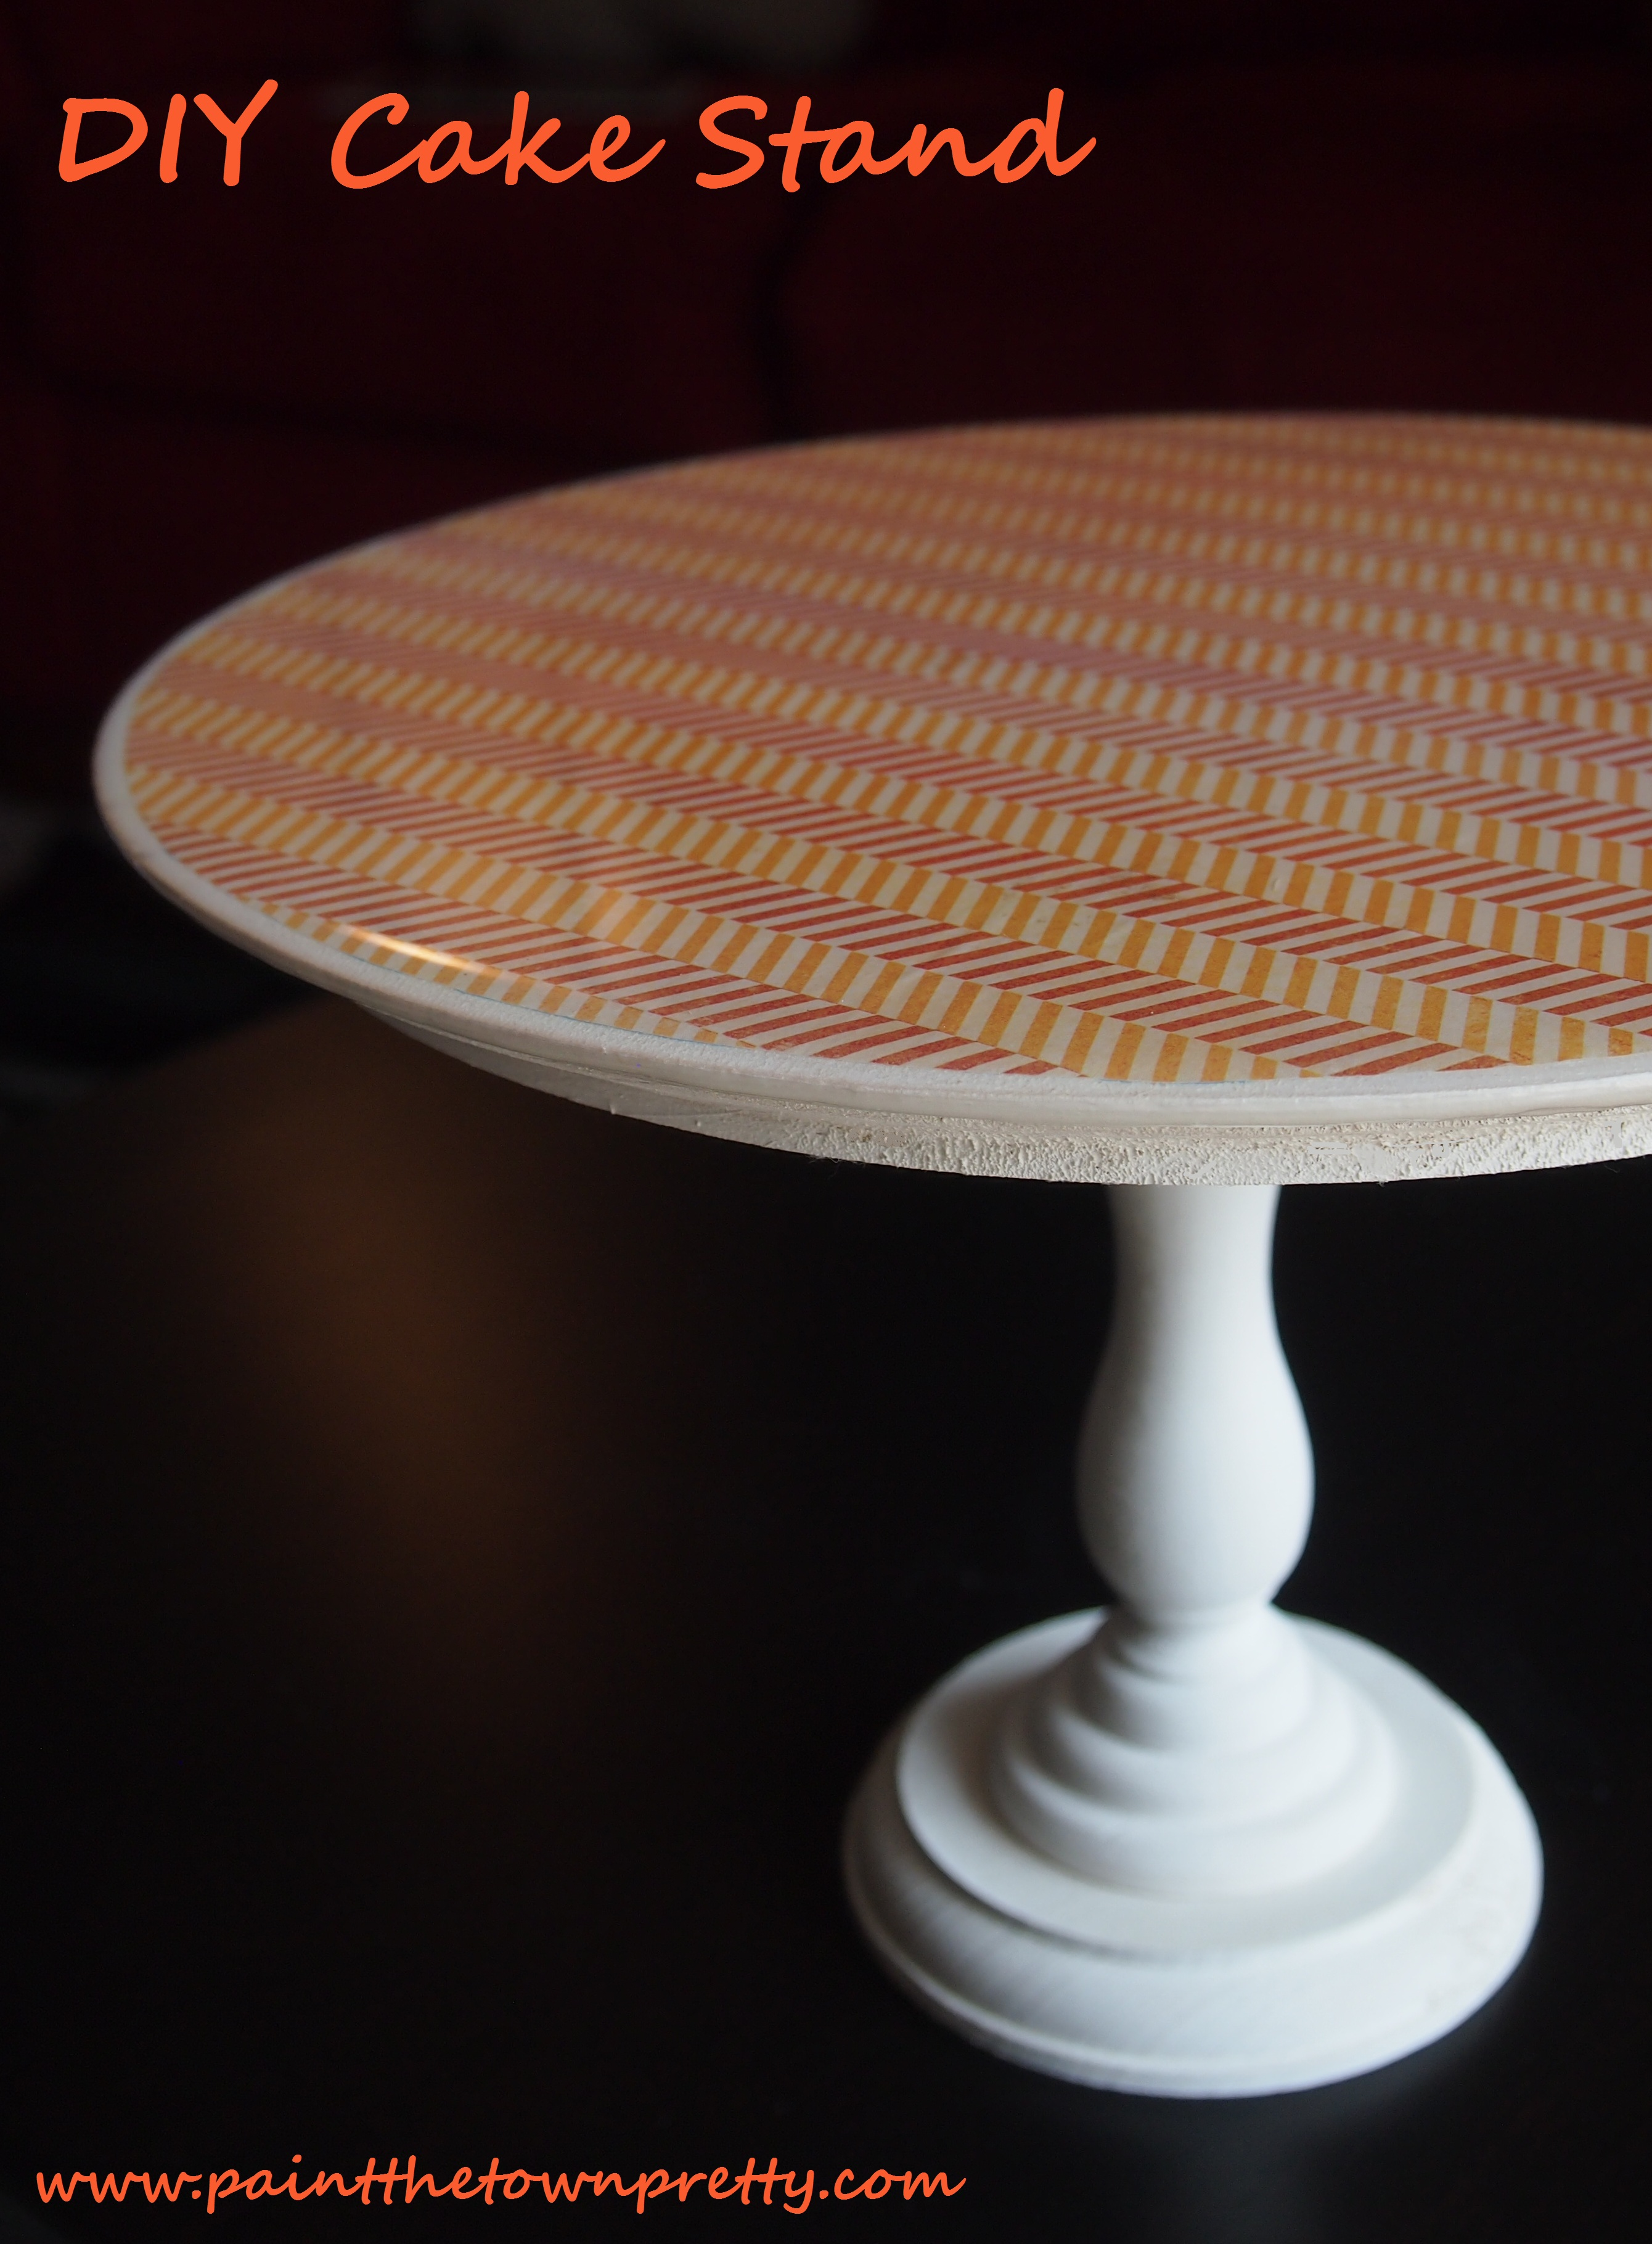 pub kitchen table denver cabinets diy epoxy cake stands | paint the town pretty